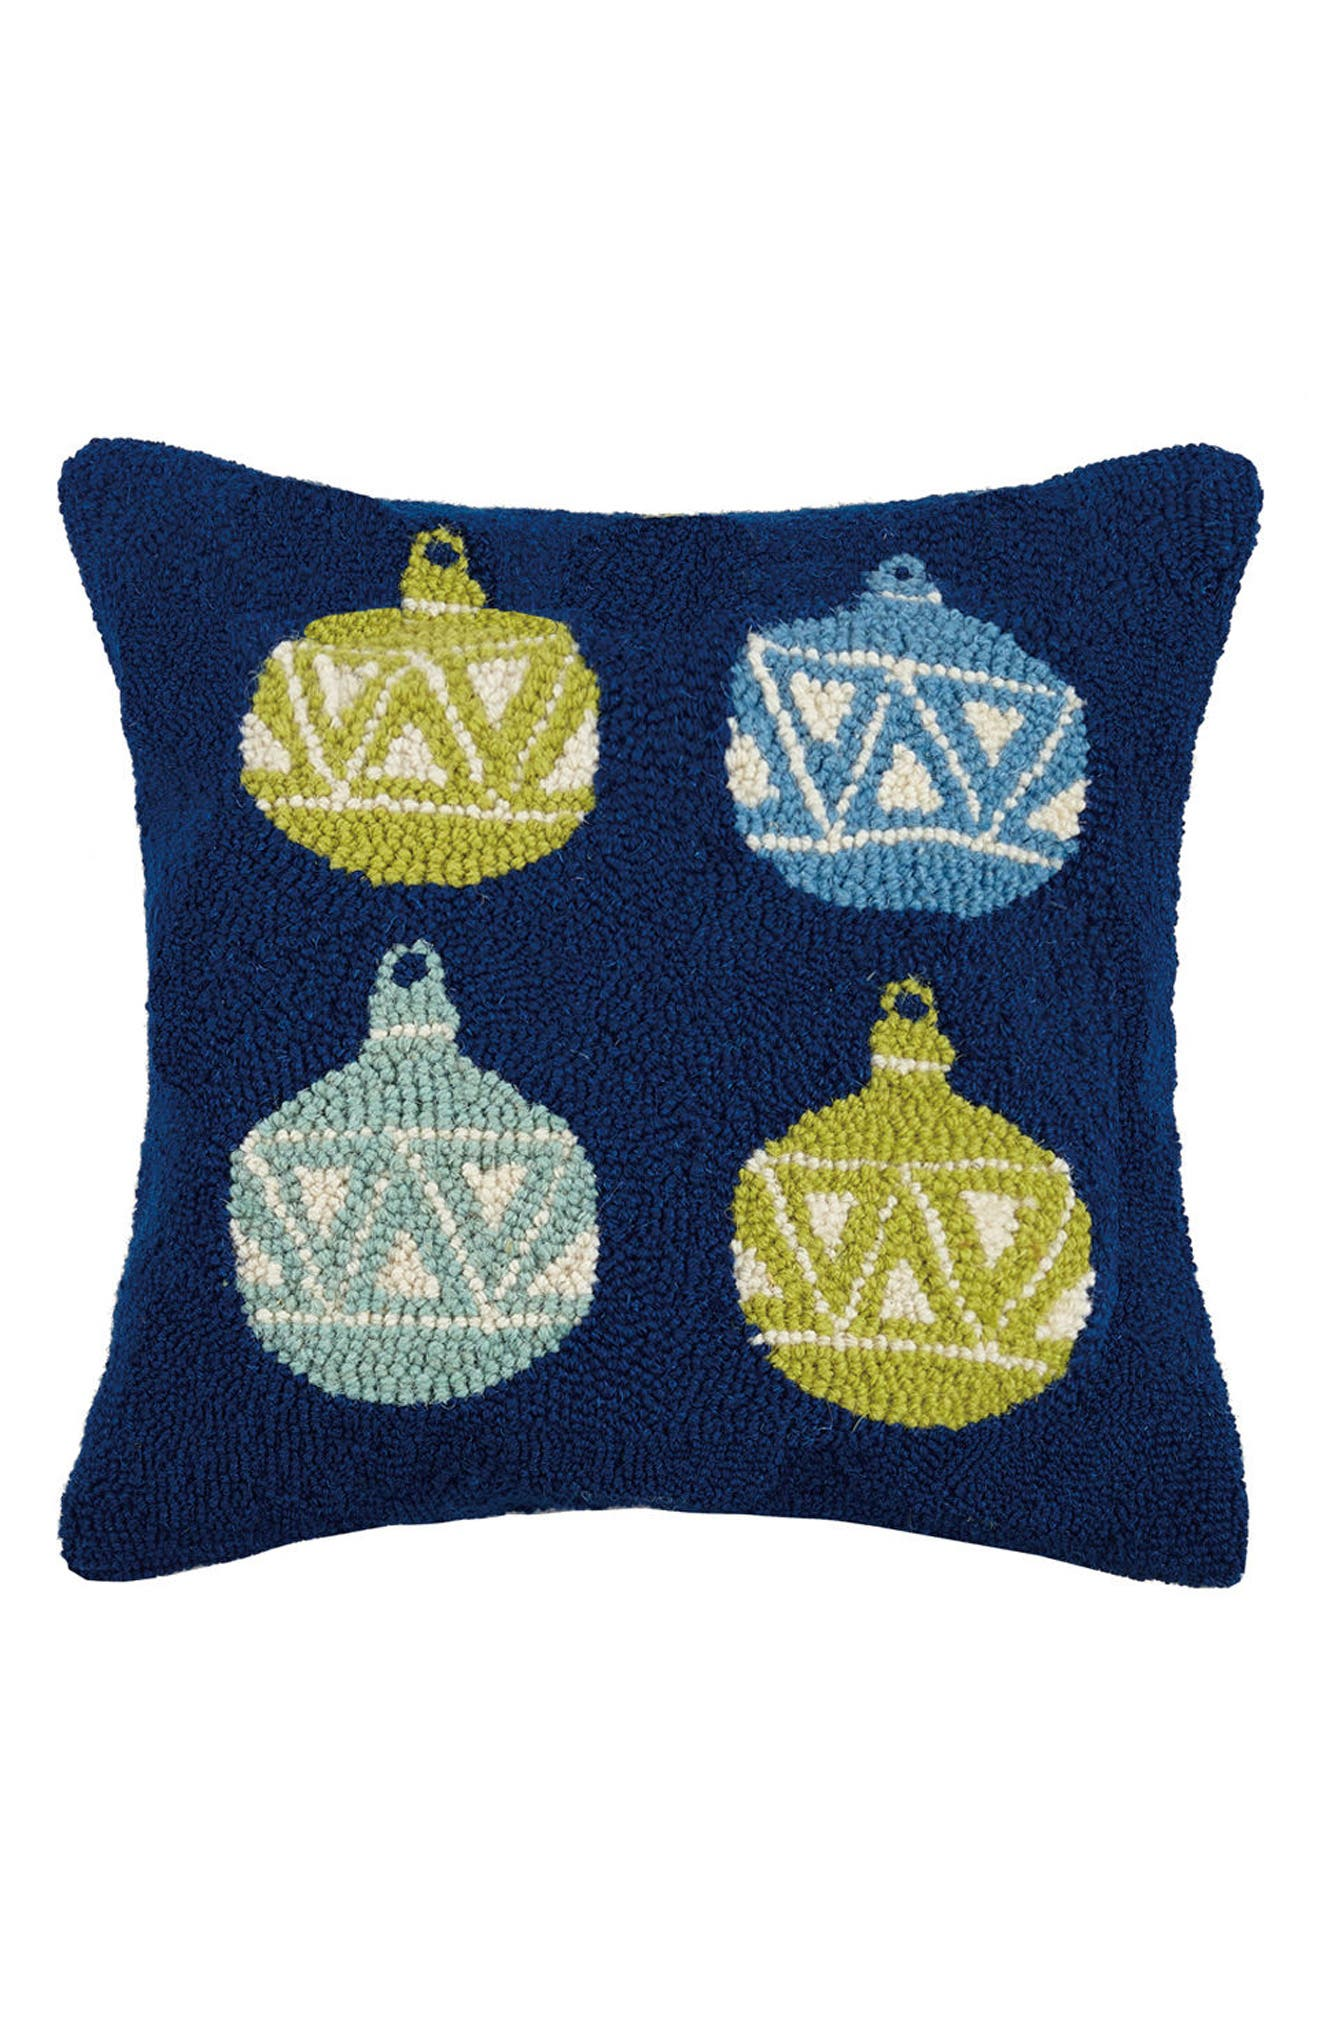 Ornaments Hooked Accent Pillow,                         Main,                         color, 400